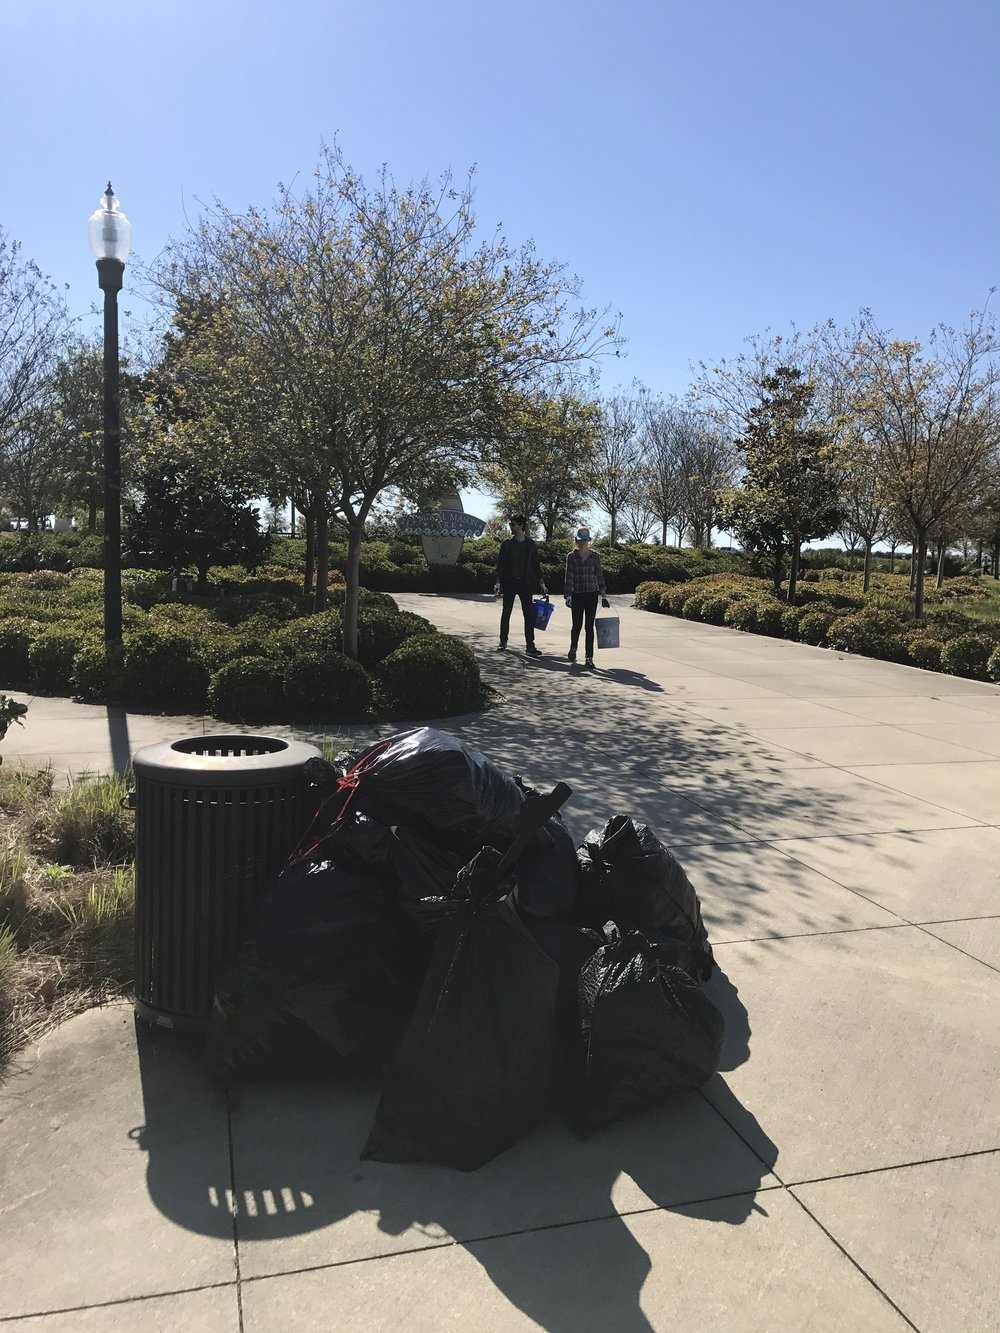 Fifteen volunteers picked up 13 trash bags of beverage containers, styrofoam and cig butts. Thanks Jackie Price for breakfast snacks